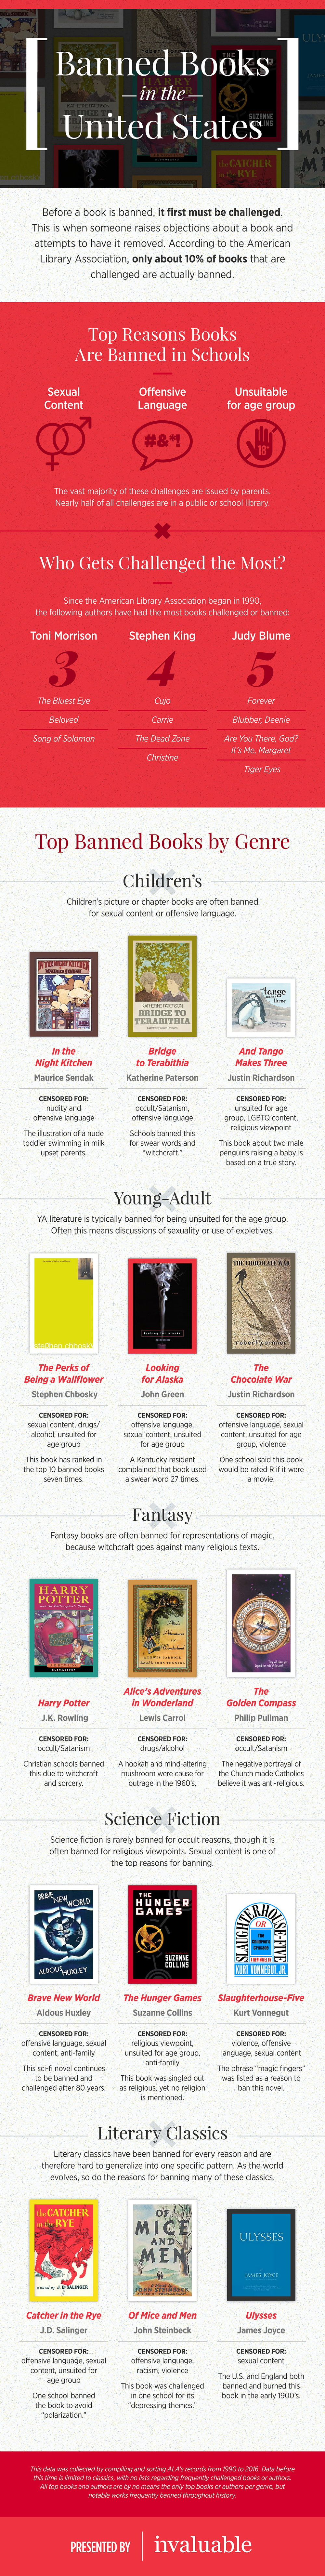 invaluable-banned-books-infographic-v2.1.jpg